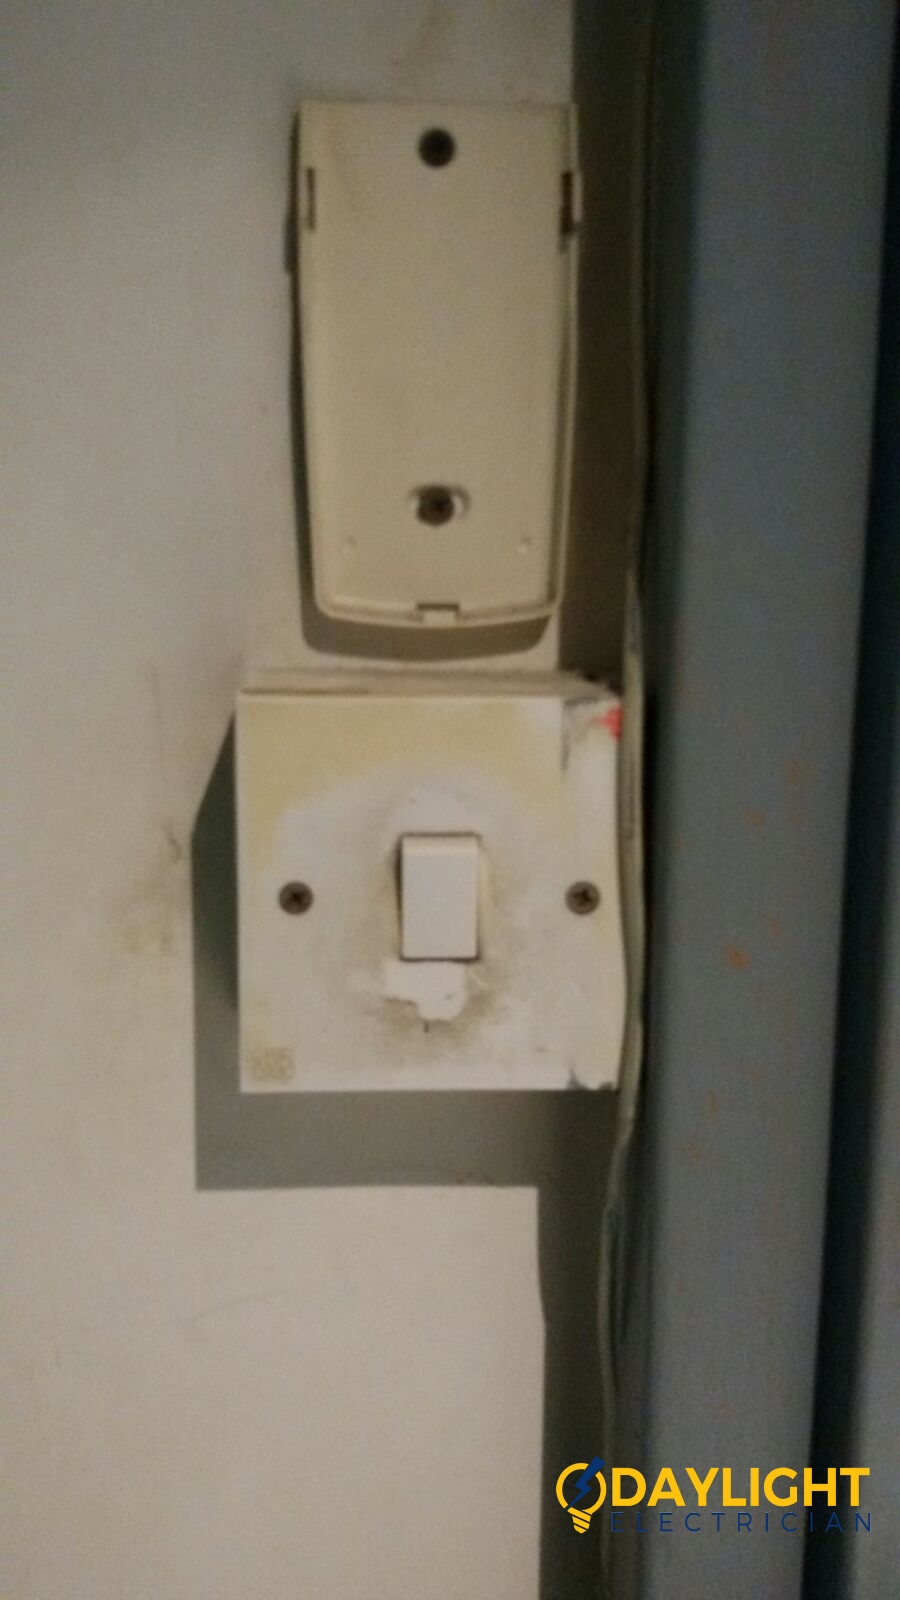 replace-light-switch-electrician-singapore-bedok-hdb-1